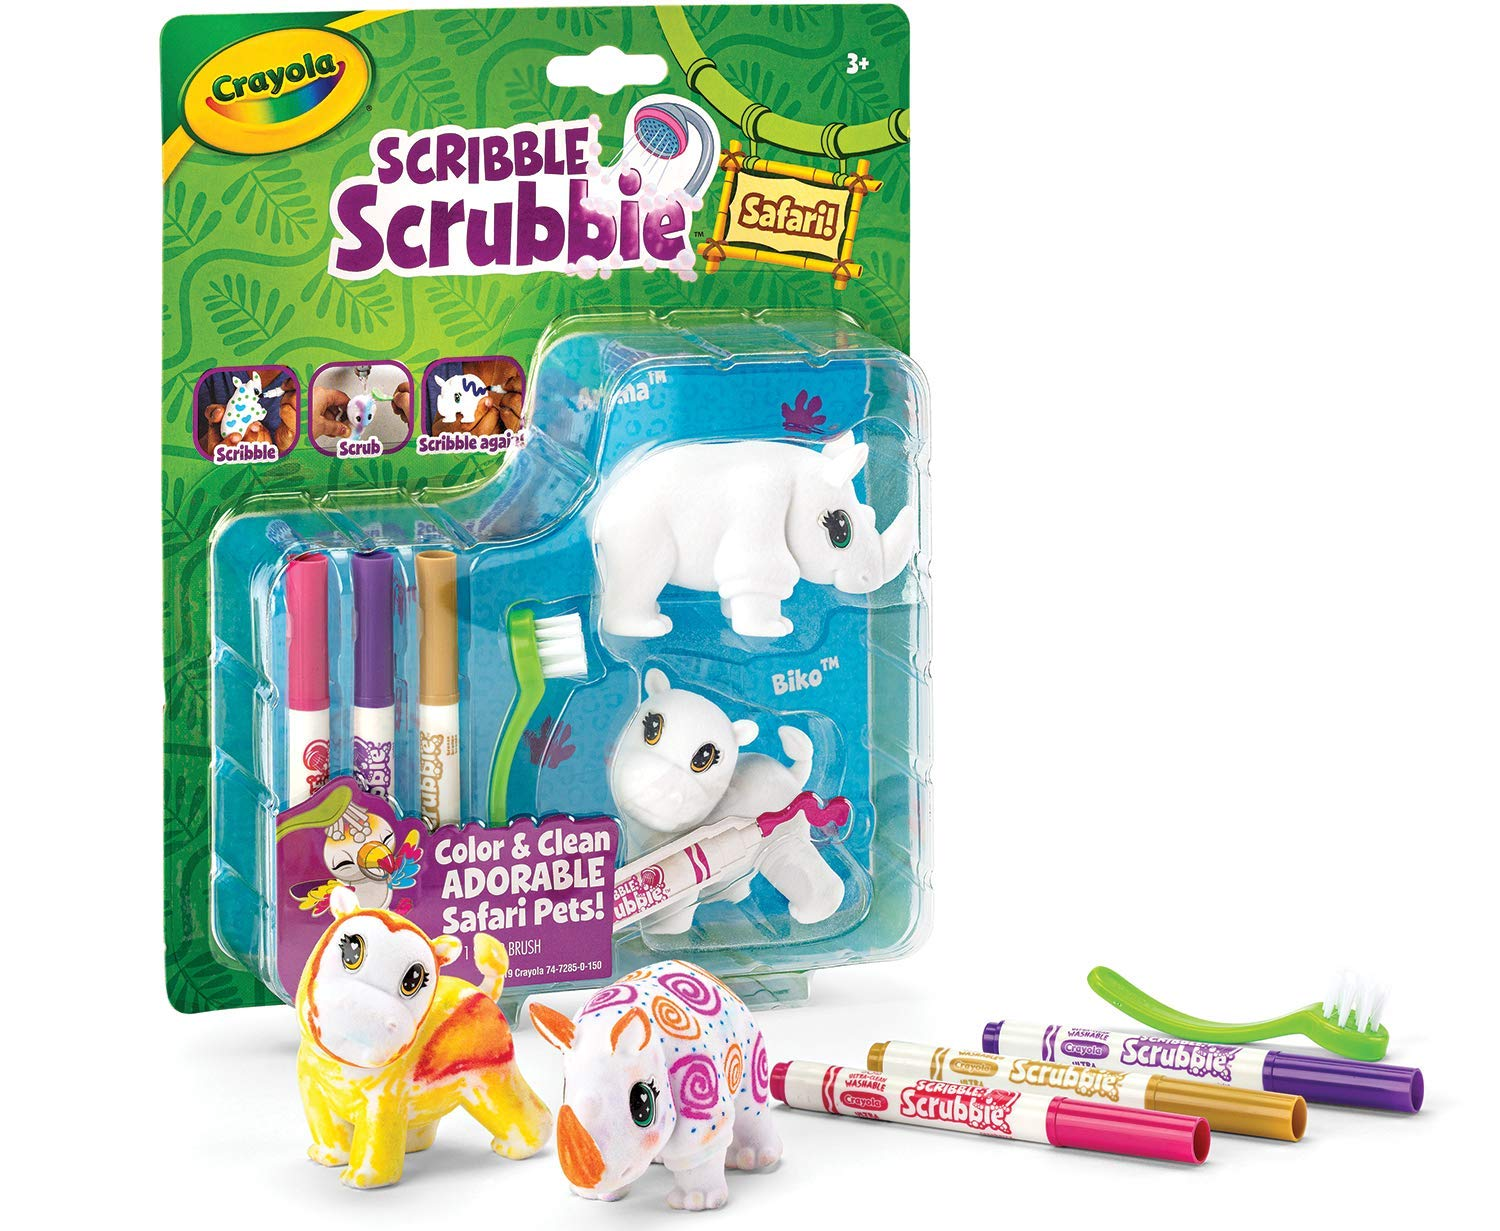 Crayola Scribble Scrubbie Safari Expansion Animal Toy Set, Edad 3+